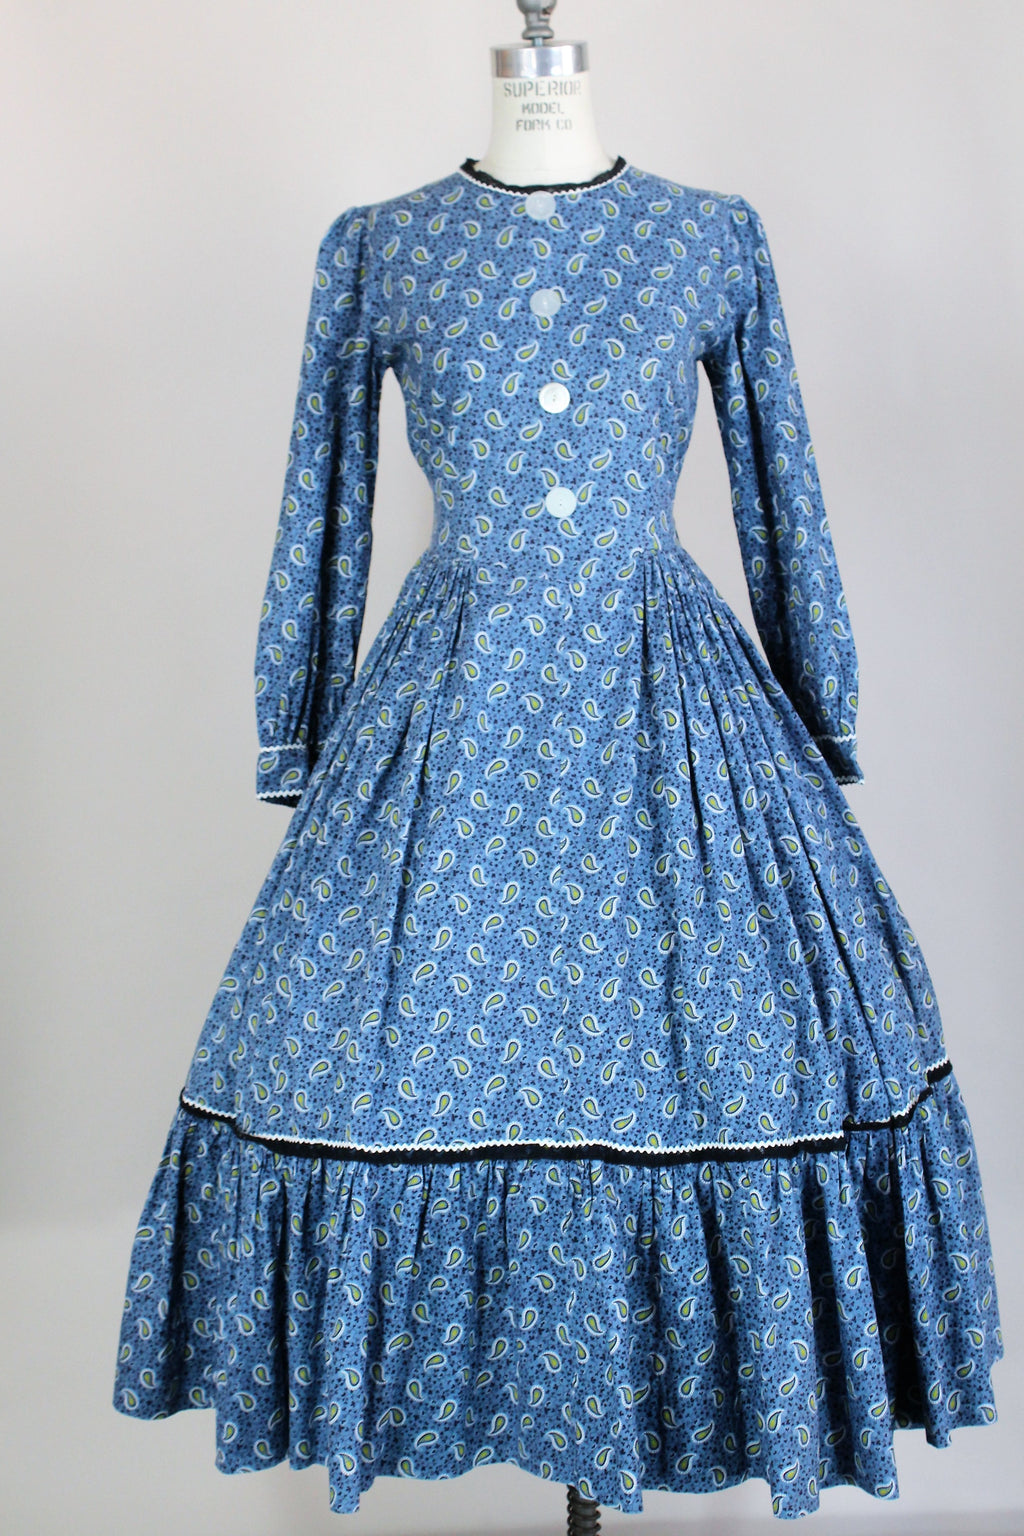 Vintage 1950s Blue Paisley Calico Cotton Fit and Flare Dress